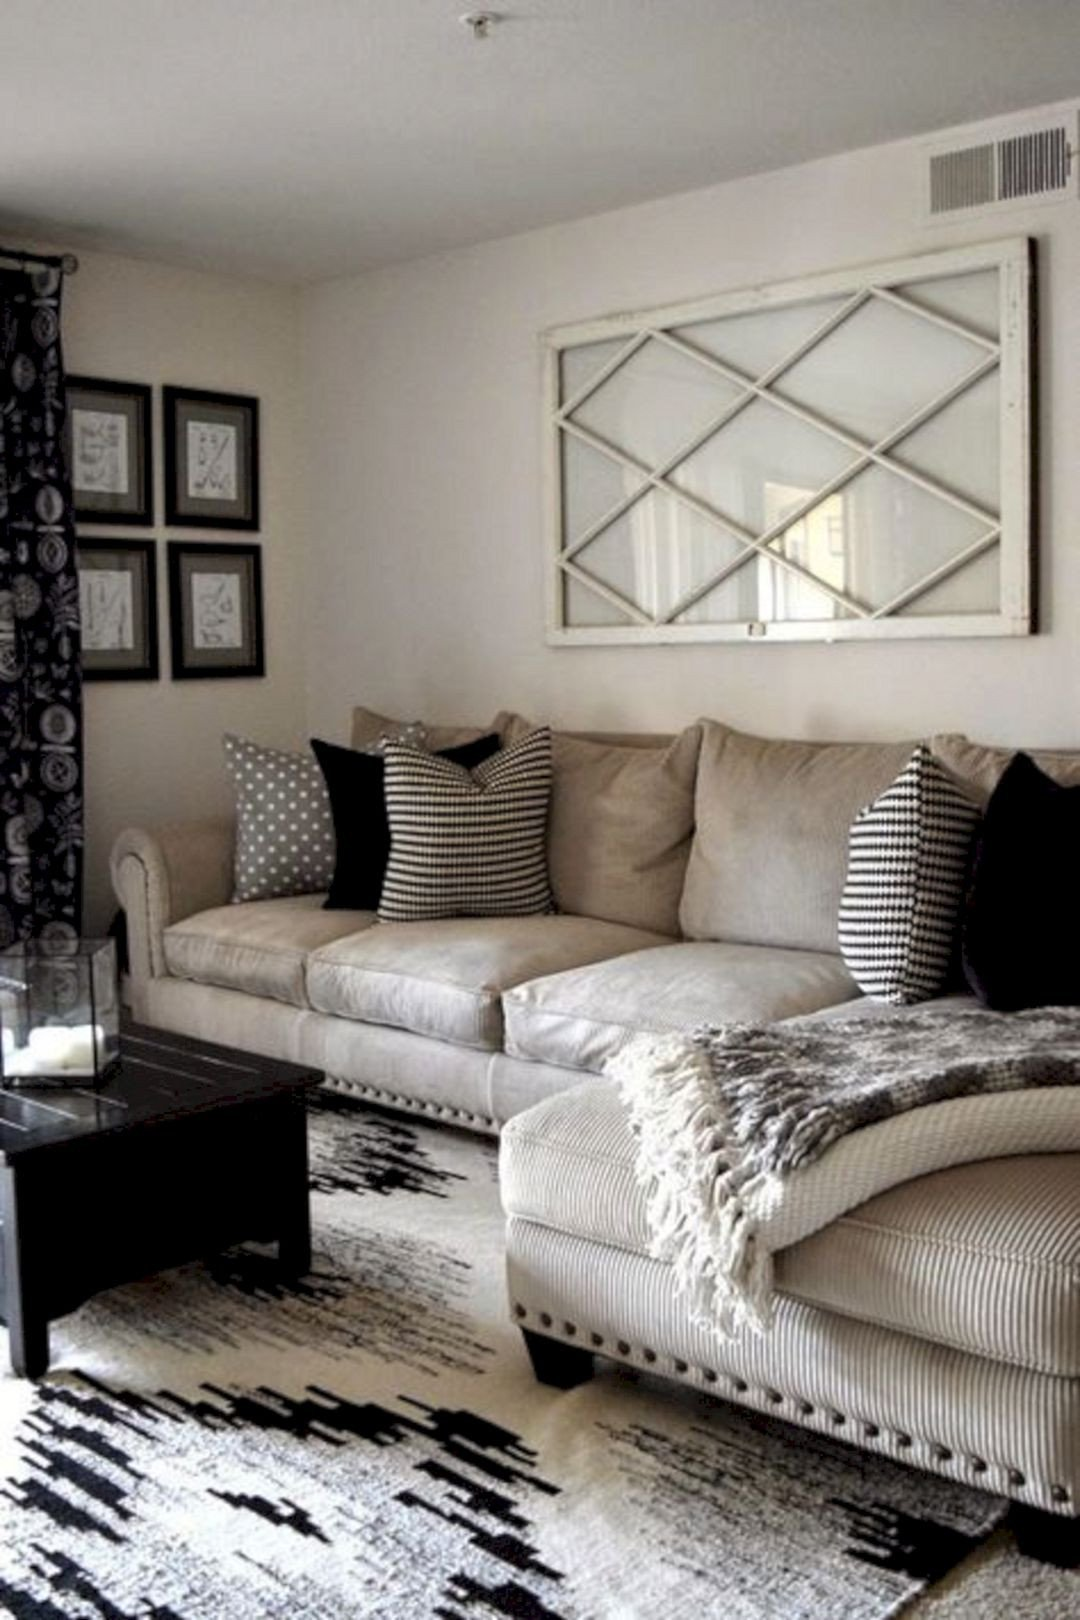 Chic Small Living Room Ideas Chic Living Room Decorating Ideas and Design 25 Chic